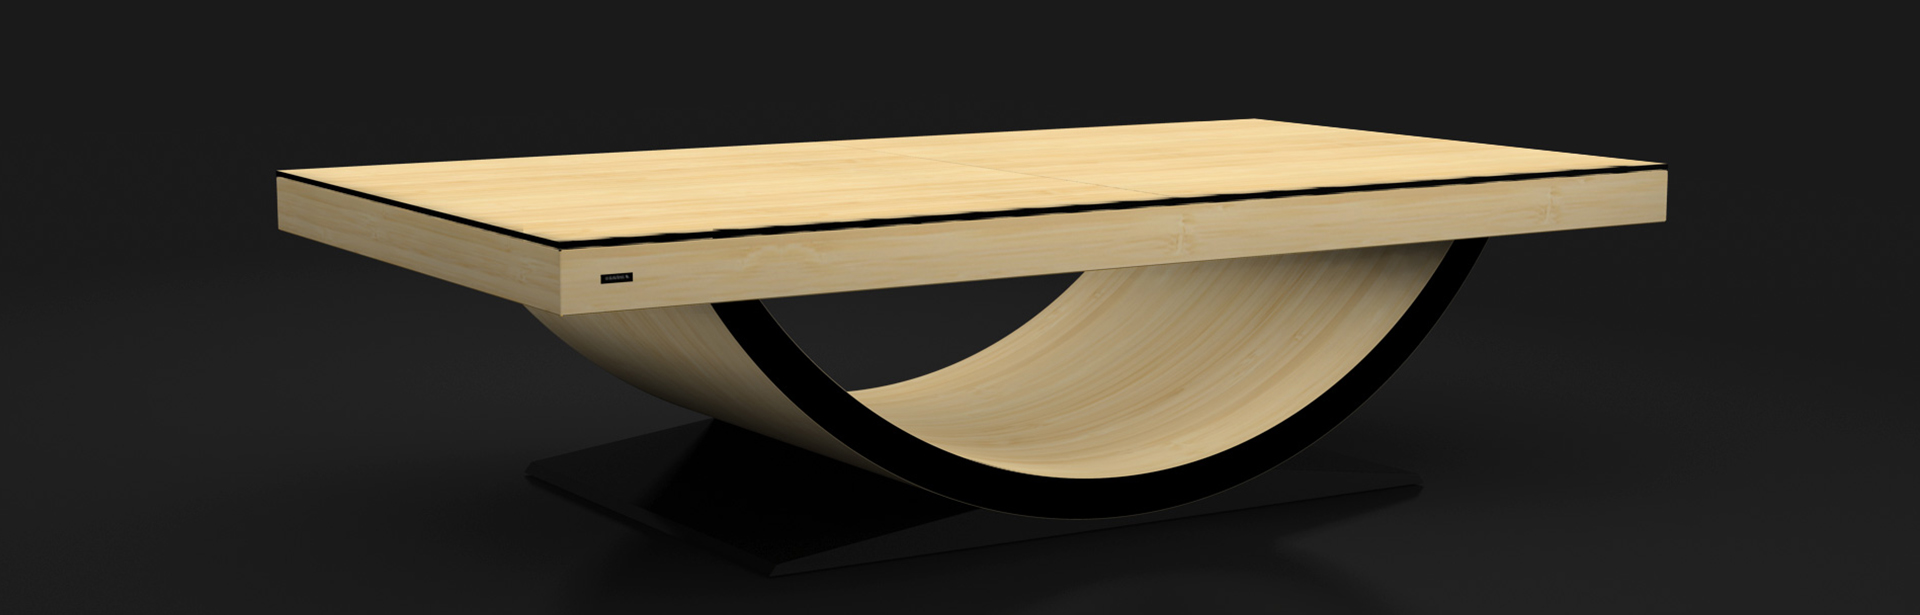 Theseus Convertible Pool Table Tennis And Dining Luxury Modern Tables The Most Exquisite Billiards